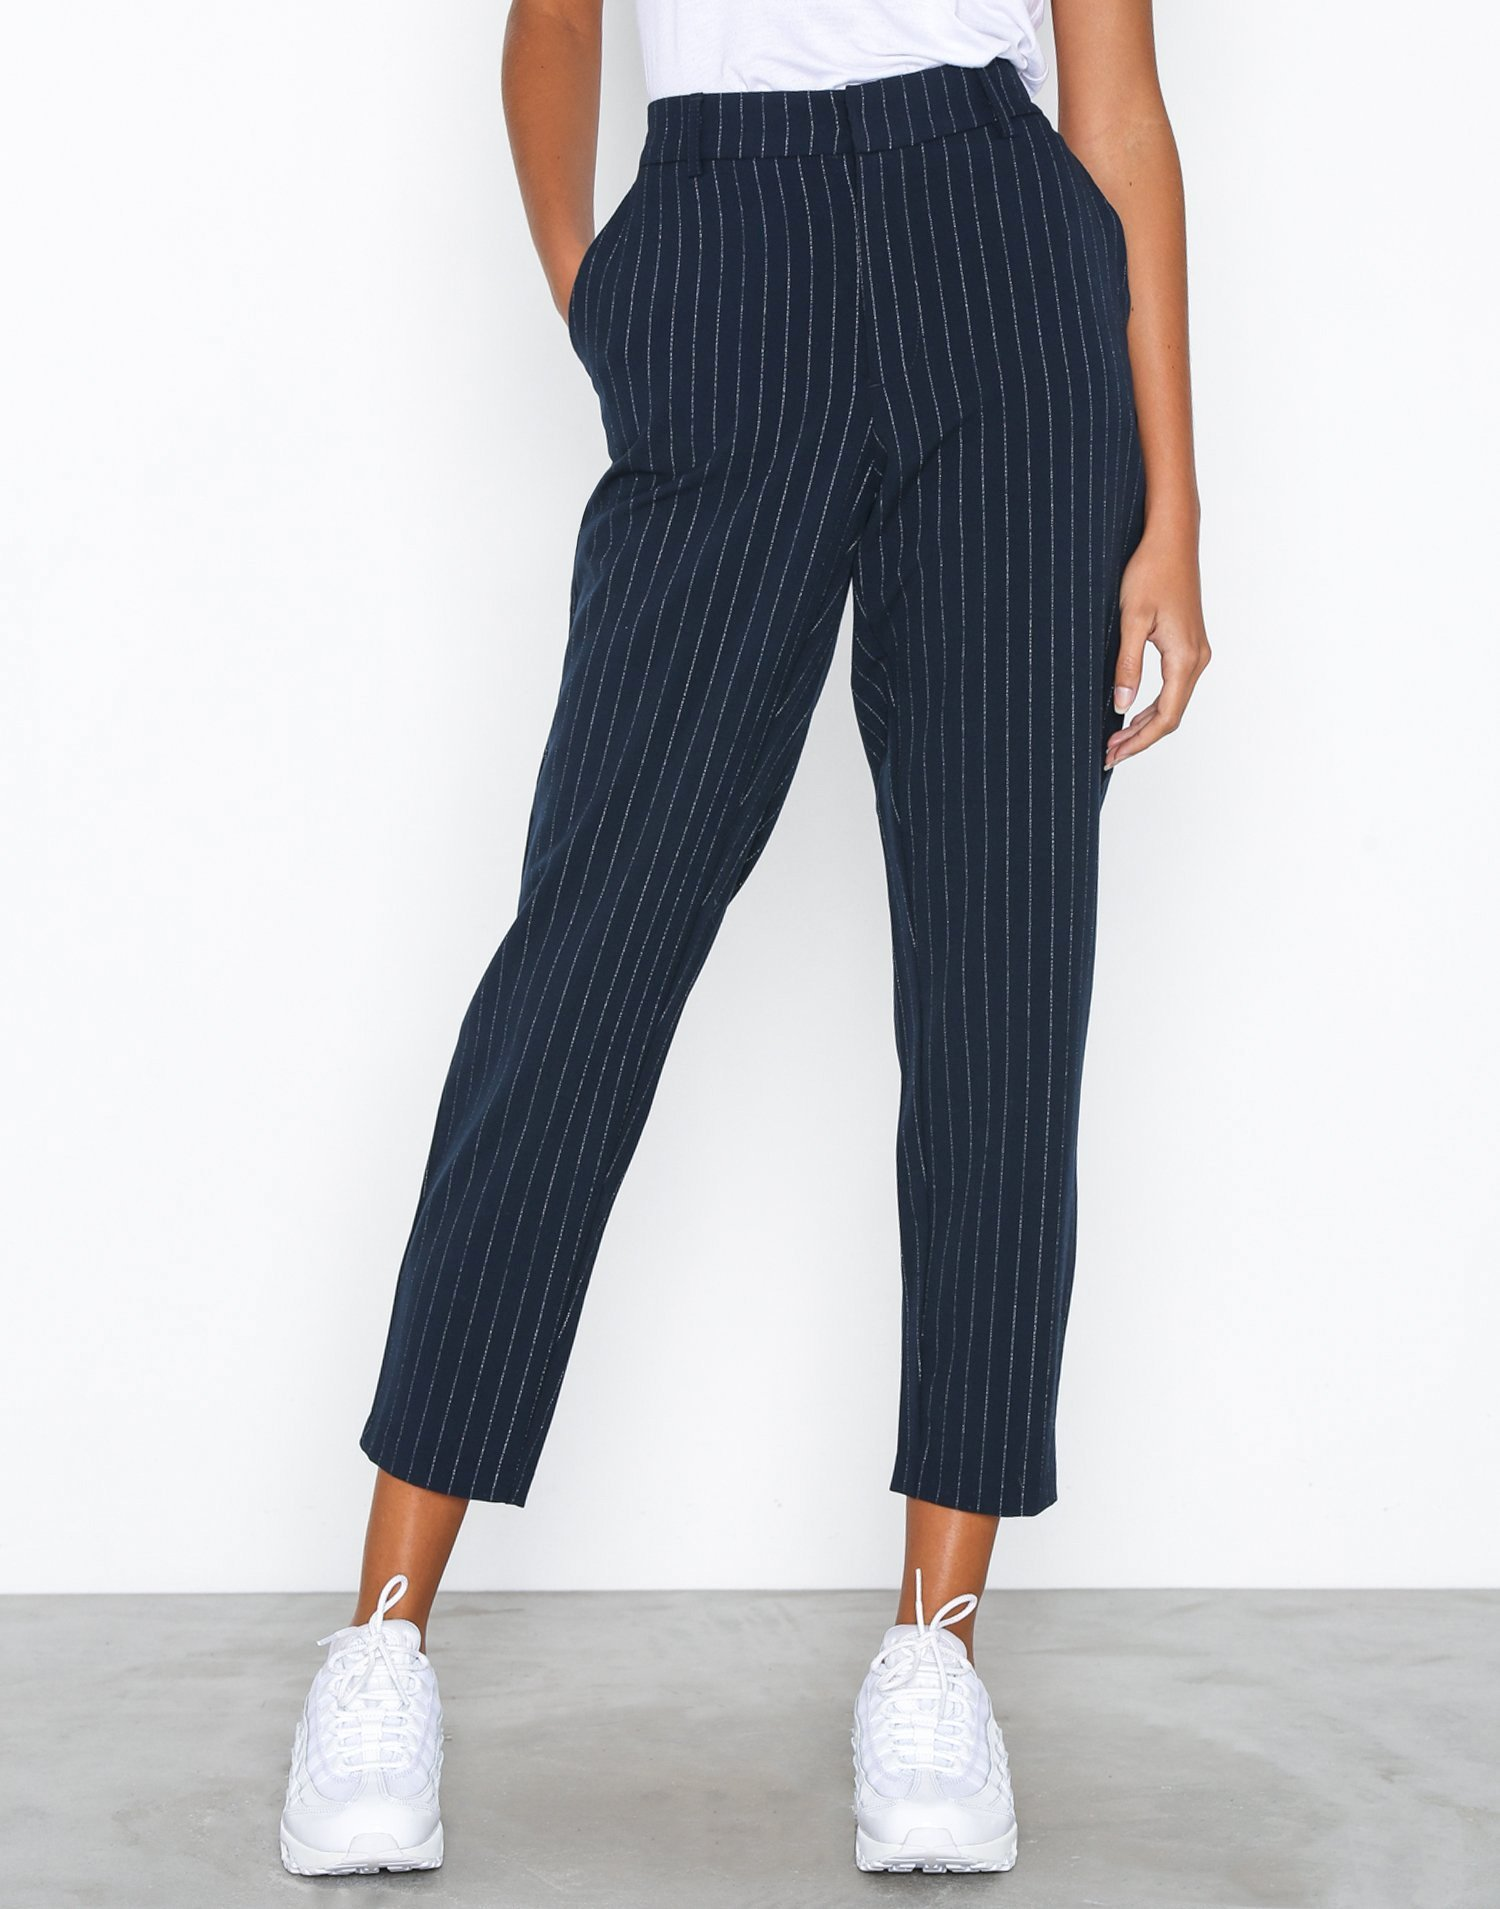 Objsiringo Pin Striped 7/8 Pant 100 by Object Collectors Item